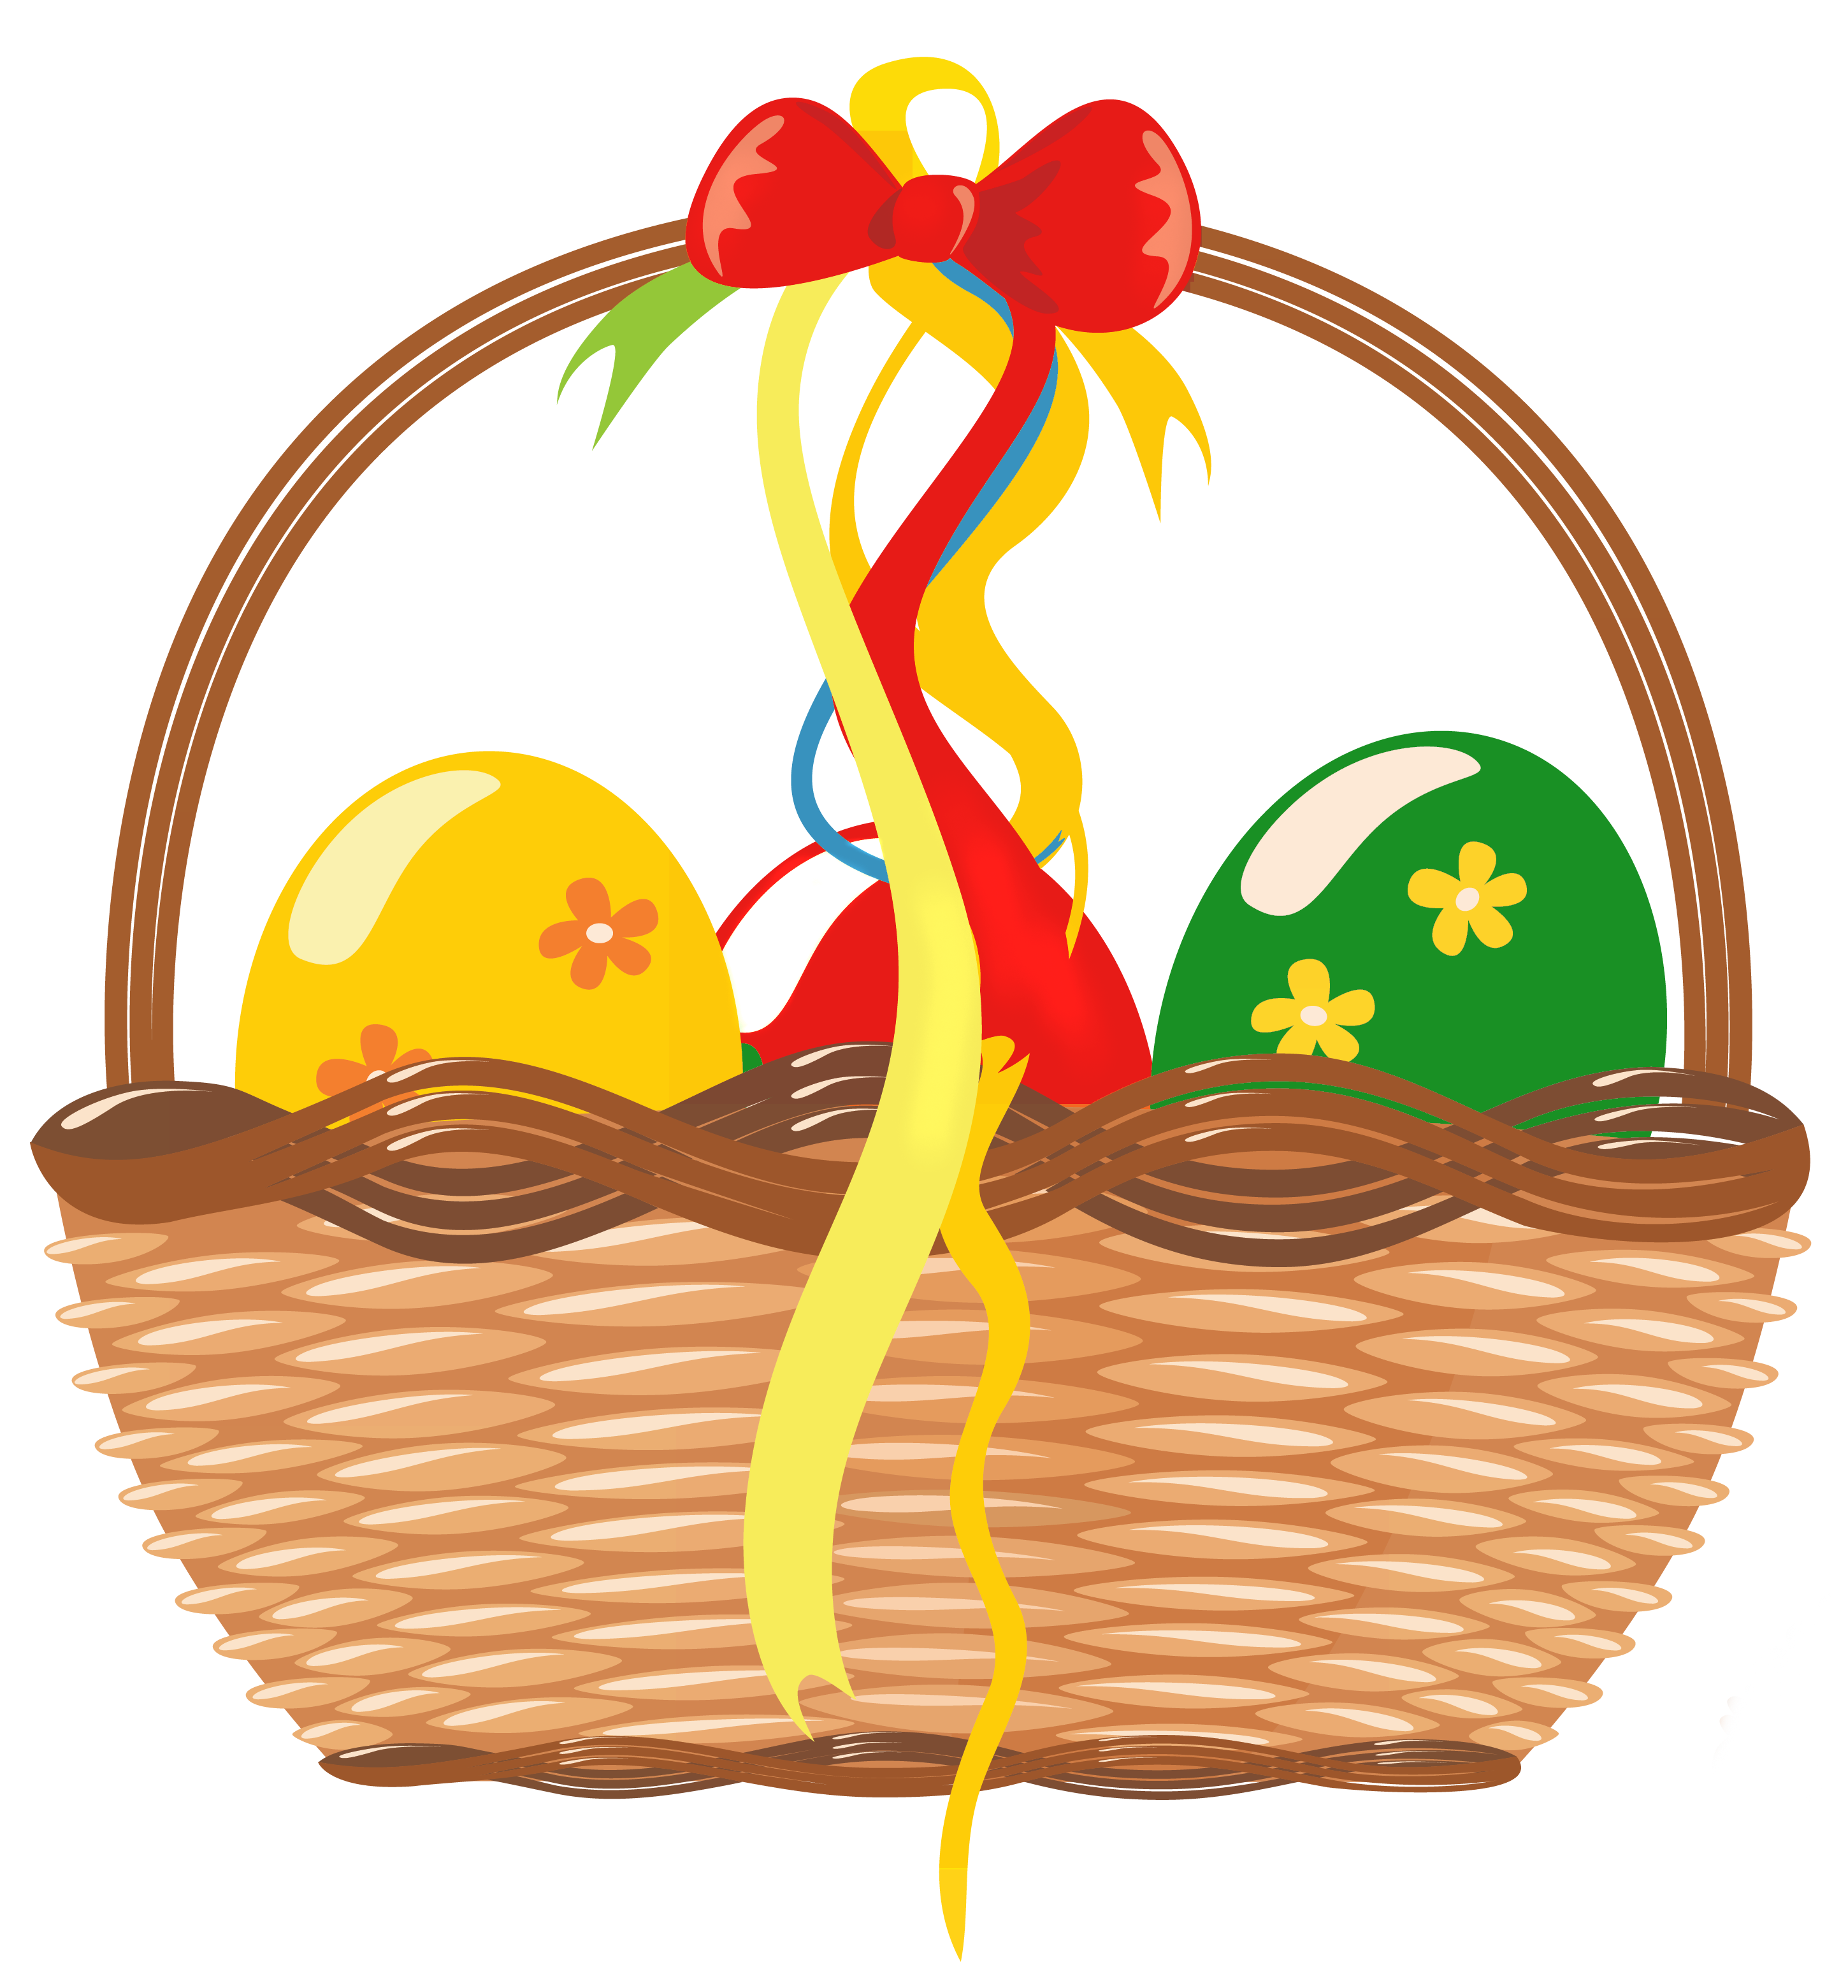 Clip Art for Auction Gift Baskets – Clipart Free Download